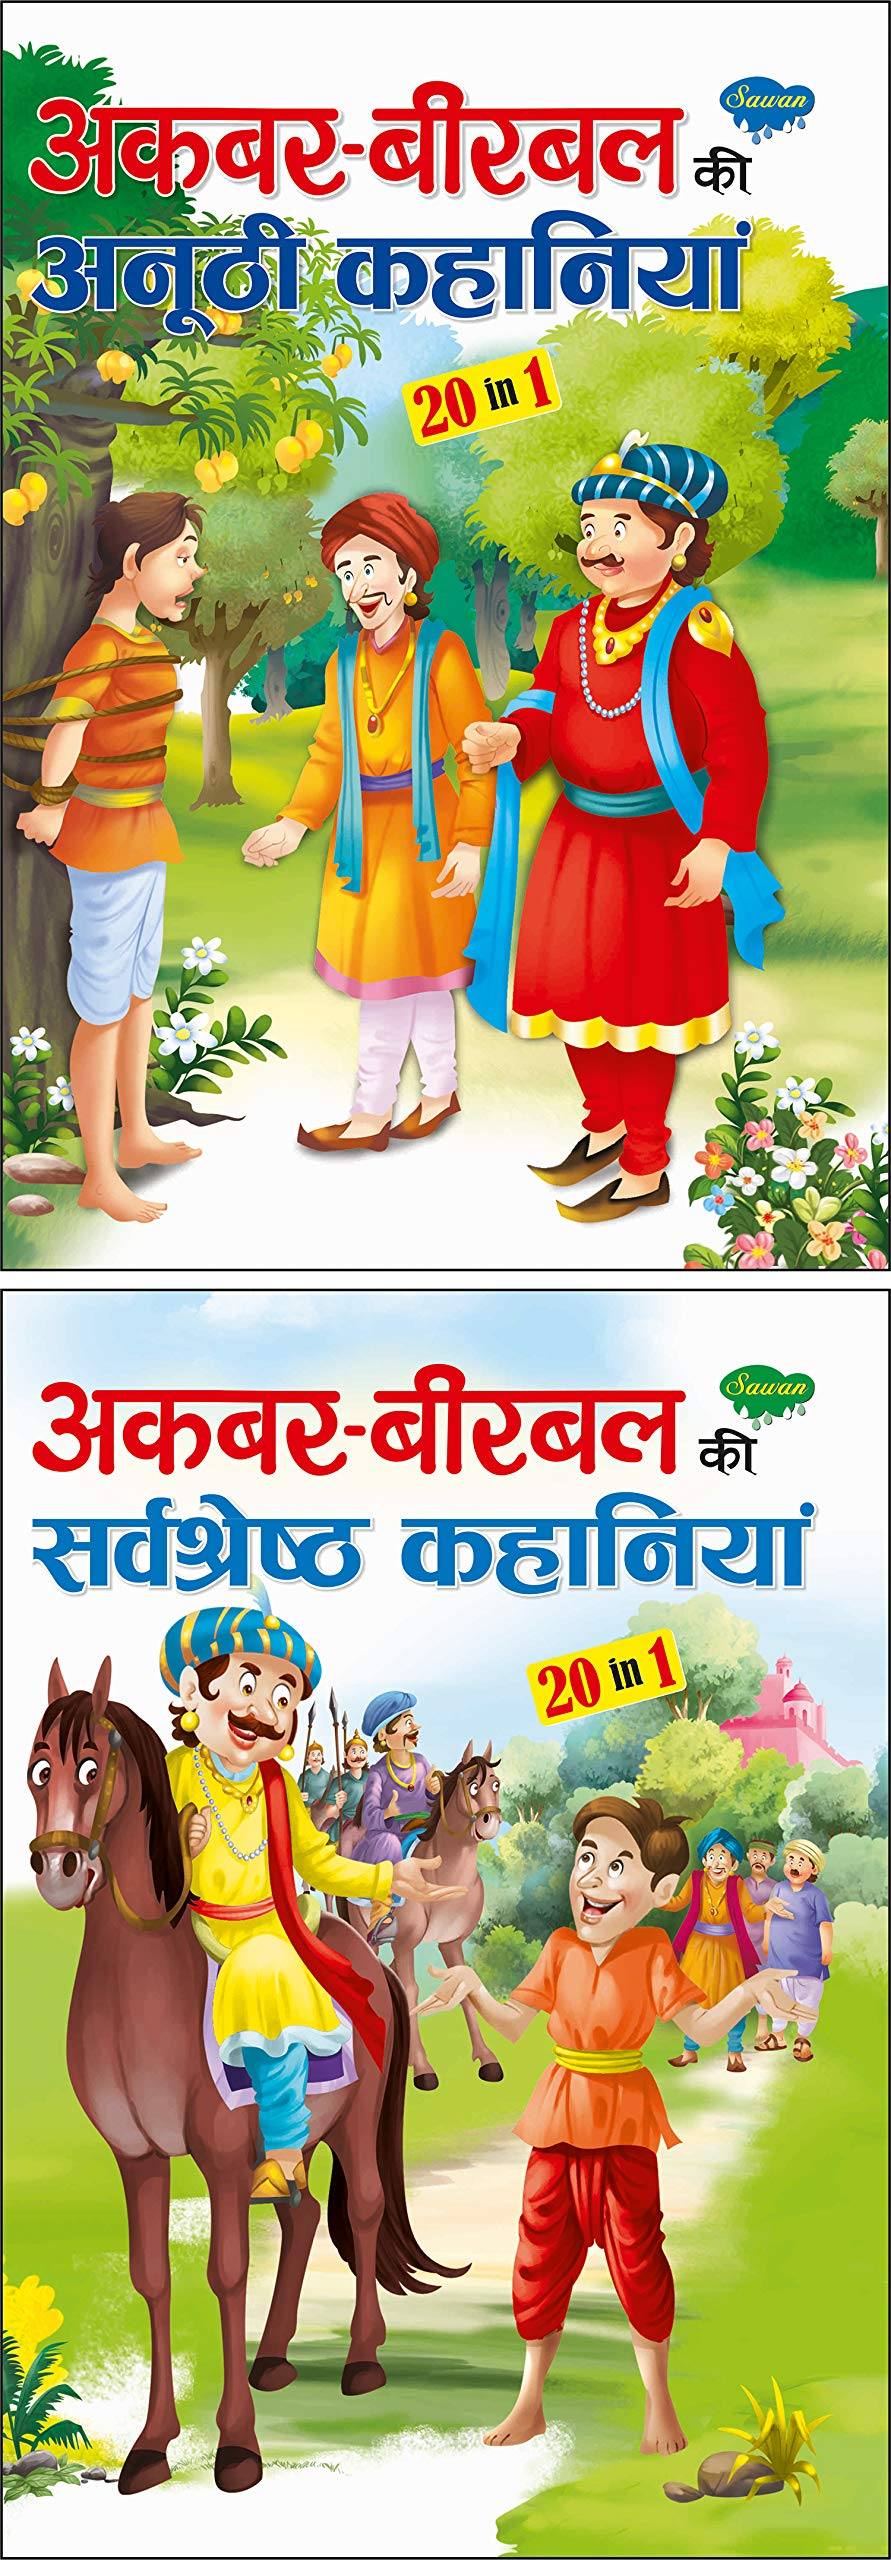 Pack of 2 story books of Akbar-birbal stories (20 in 1 Series)   Intersting Story Books For Childrens in Hindi